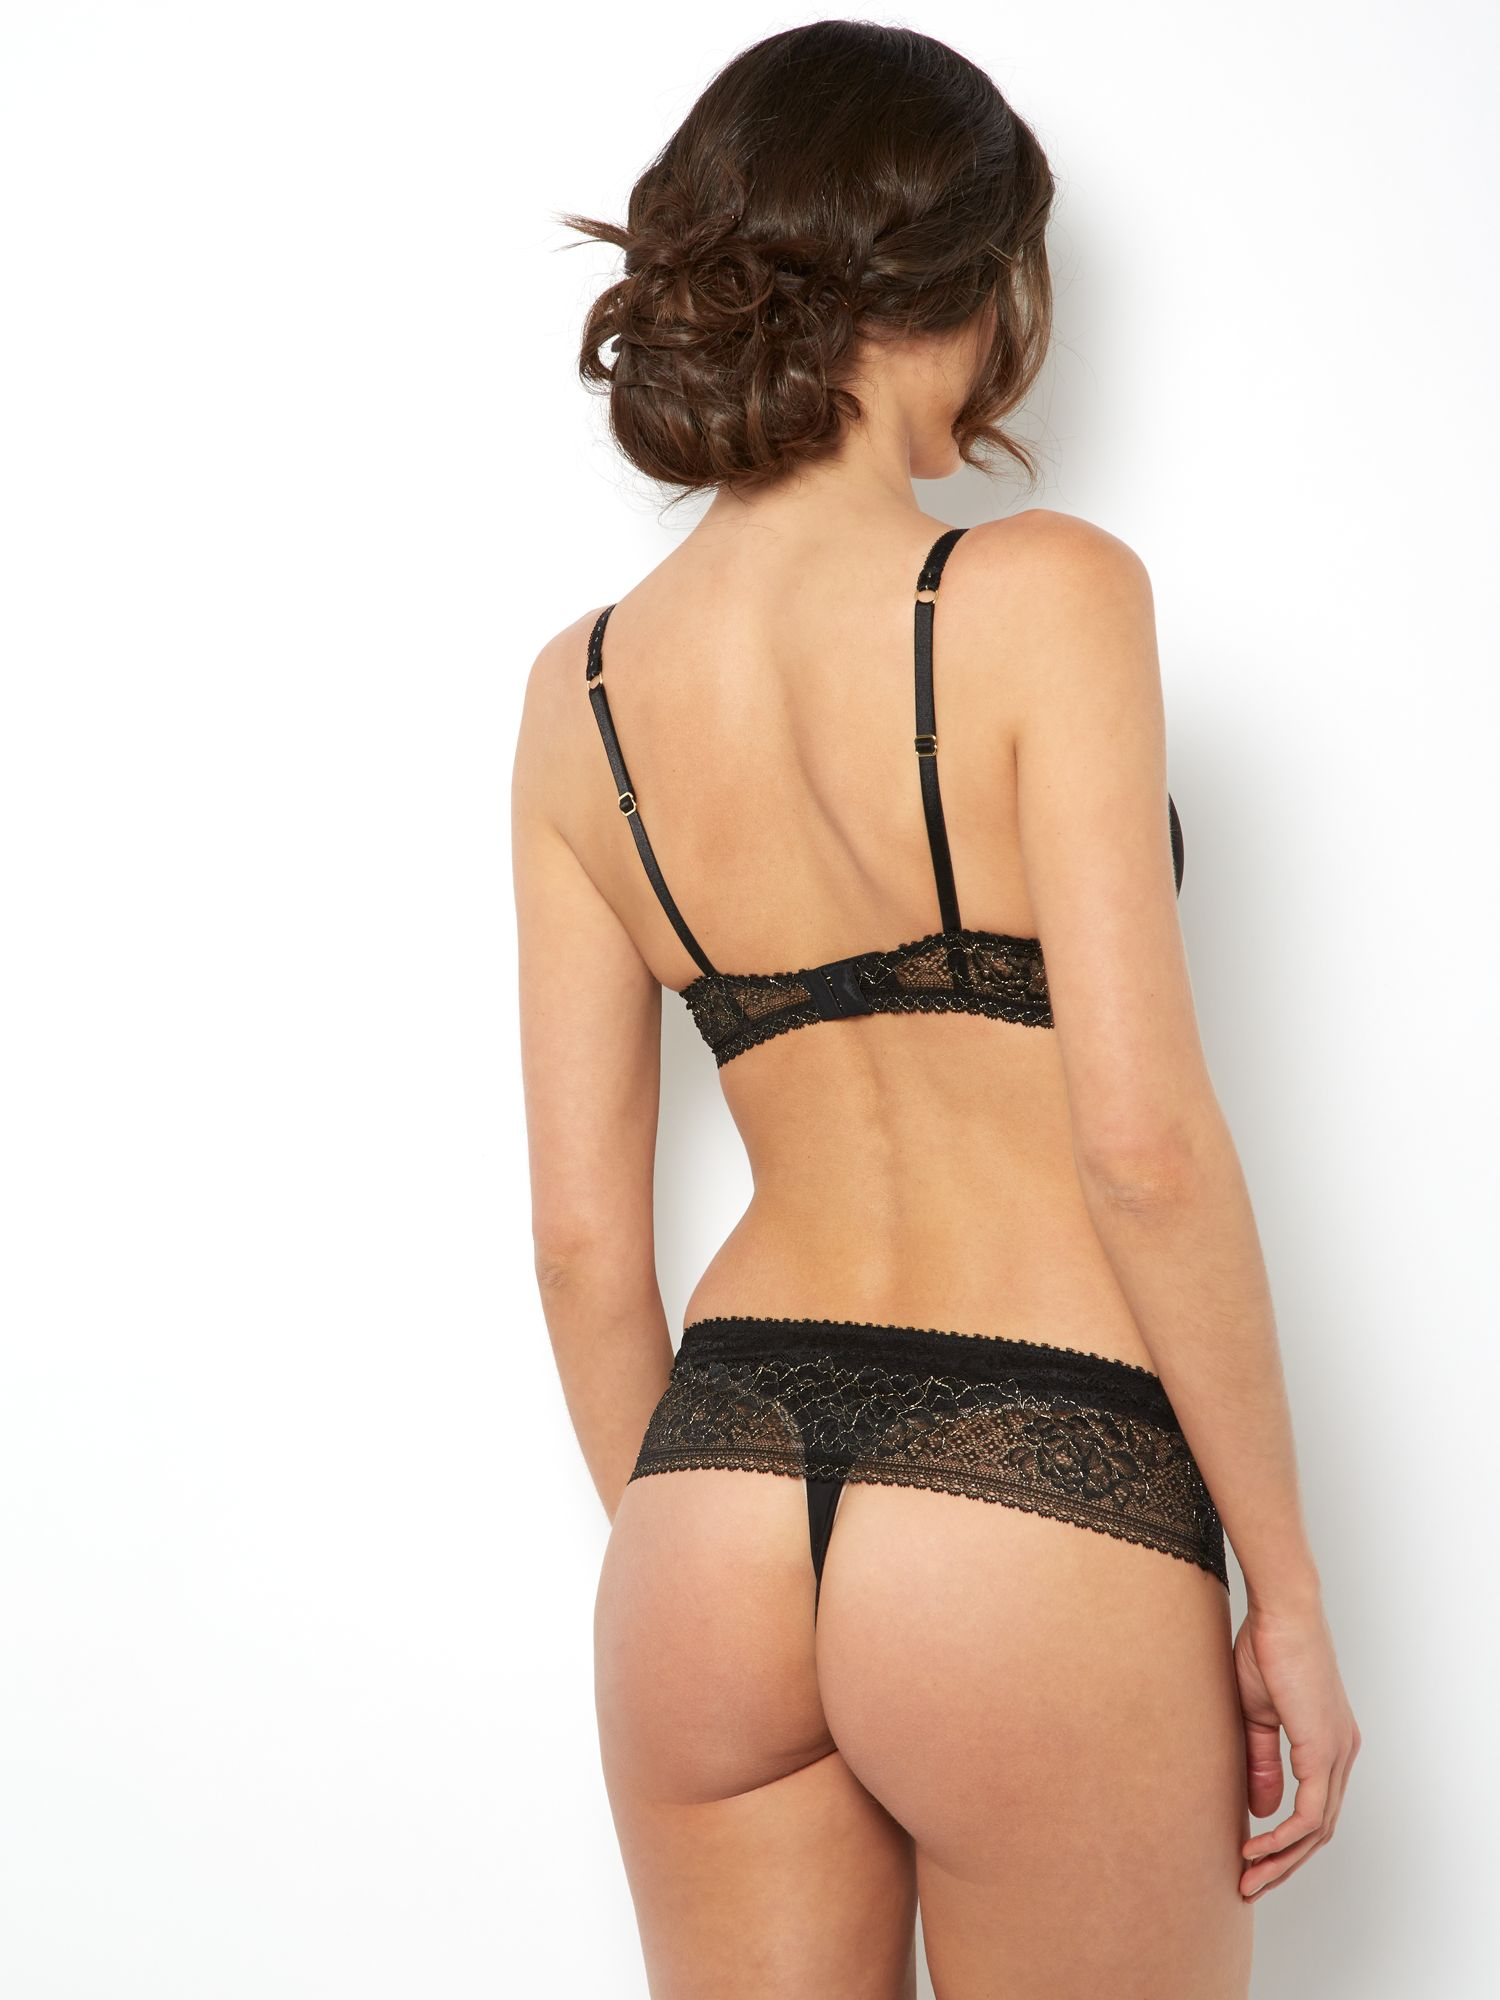 Lace Range in Black